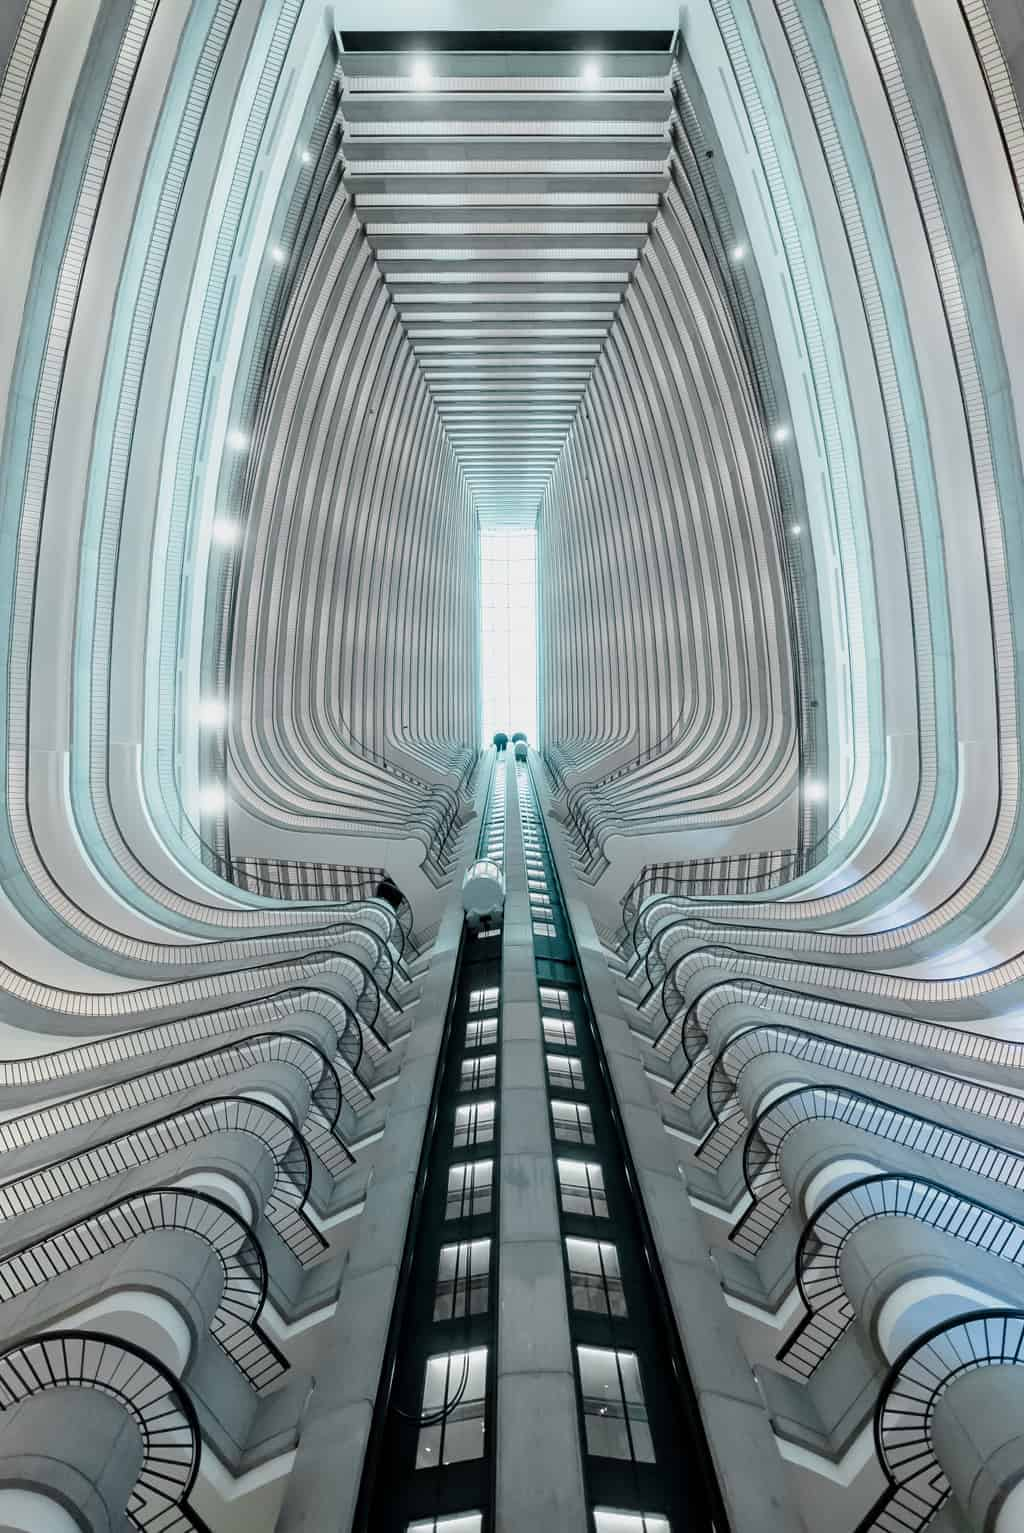 Forced perspective image of a hotel interior